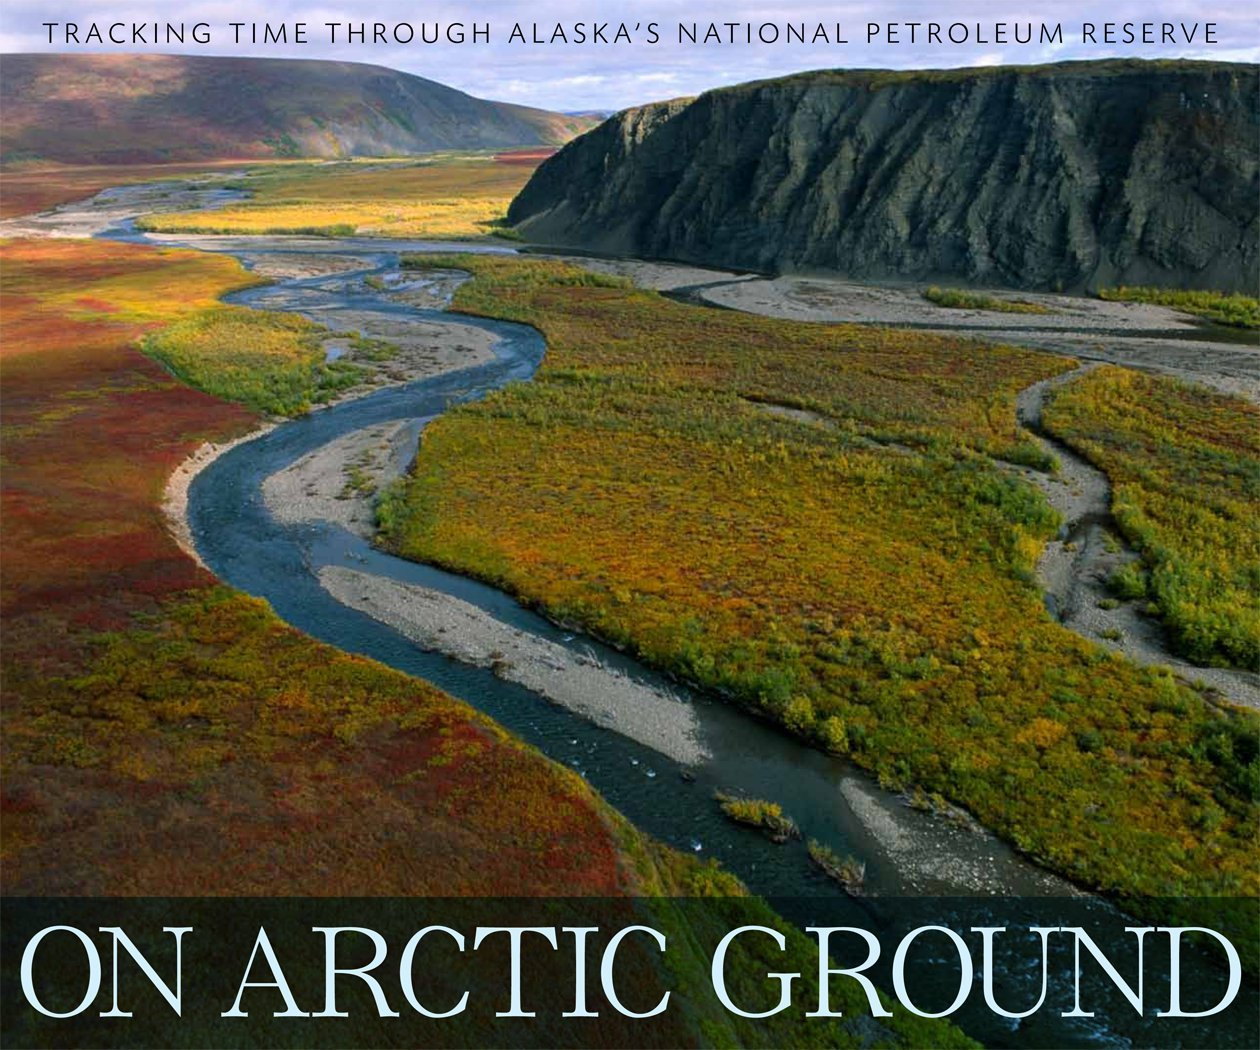 Read Online On Arctic Ground: Tracking Time Through Alaska's National Petroleum Reserve PDF